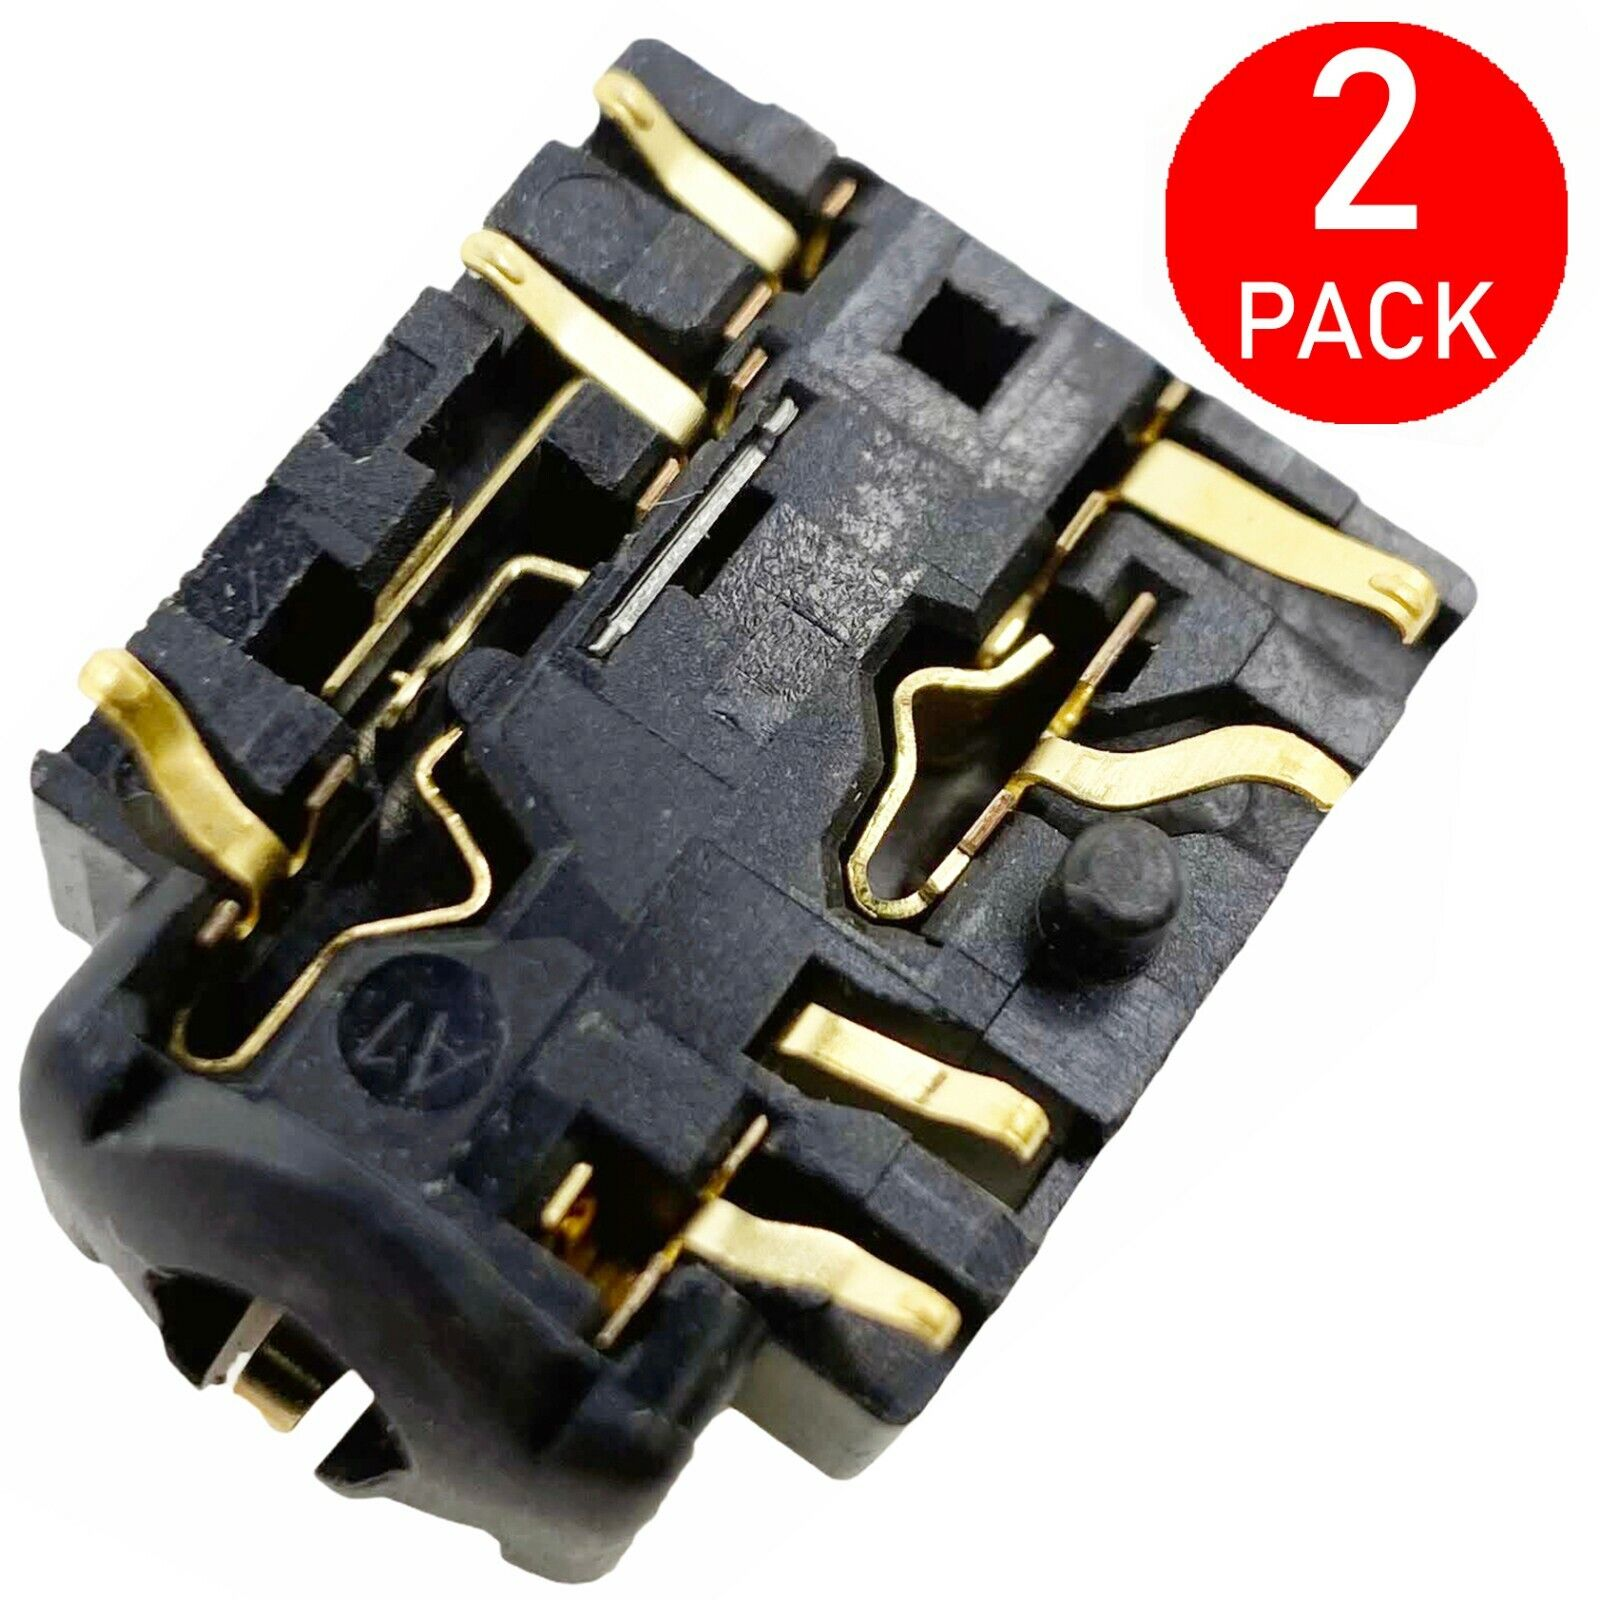 (2x PACK) Headphone jack for Xbox One S controller 1708 replacement port socket